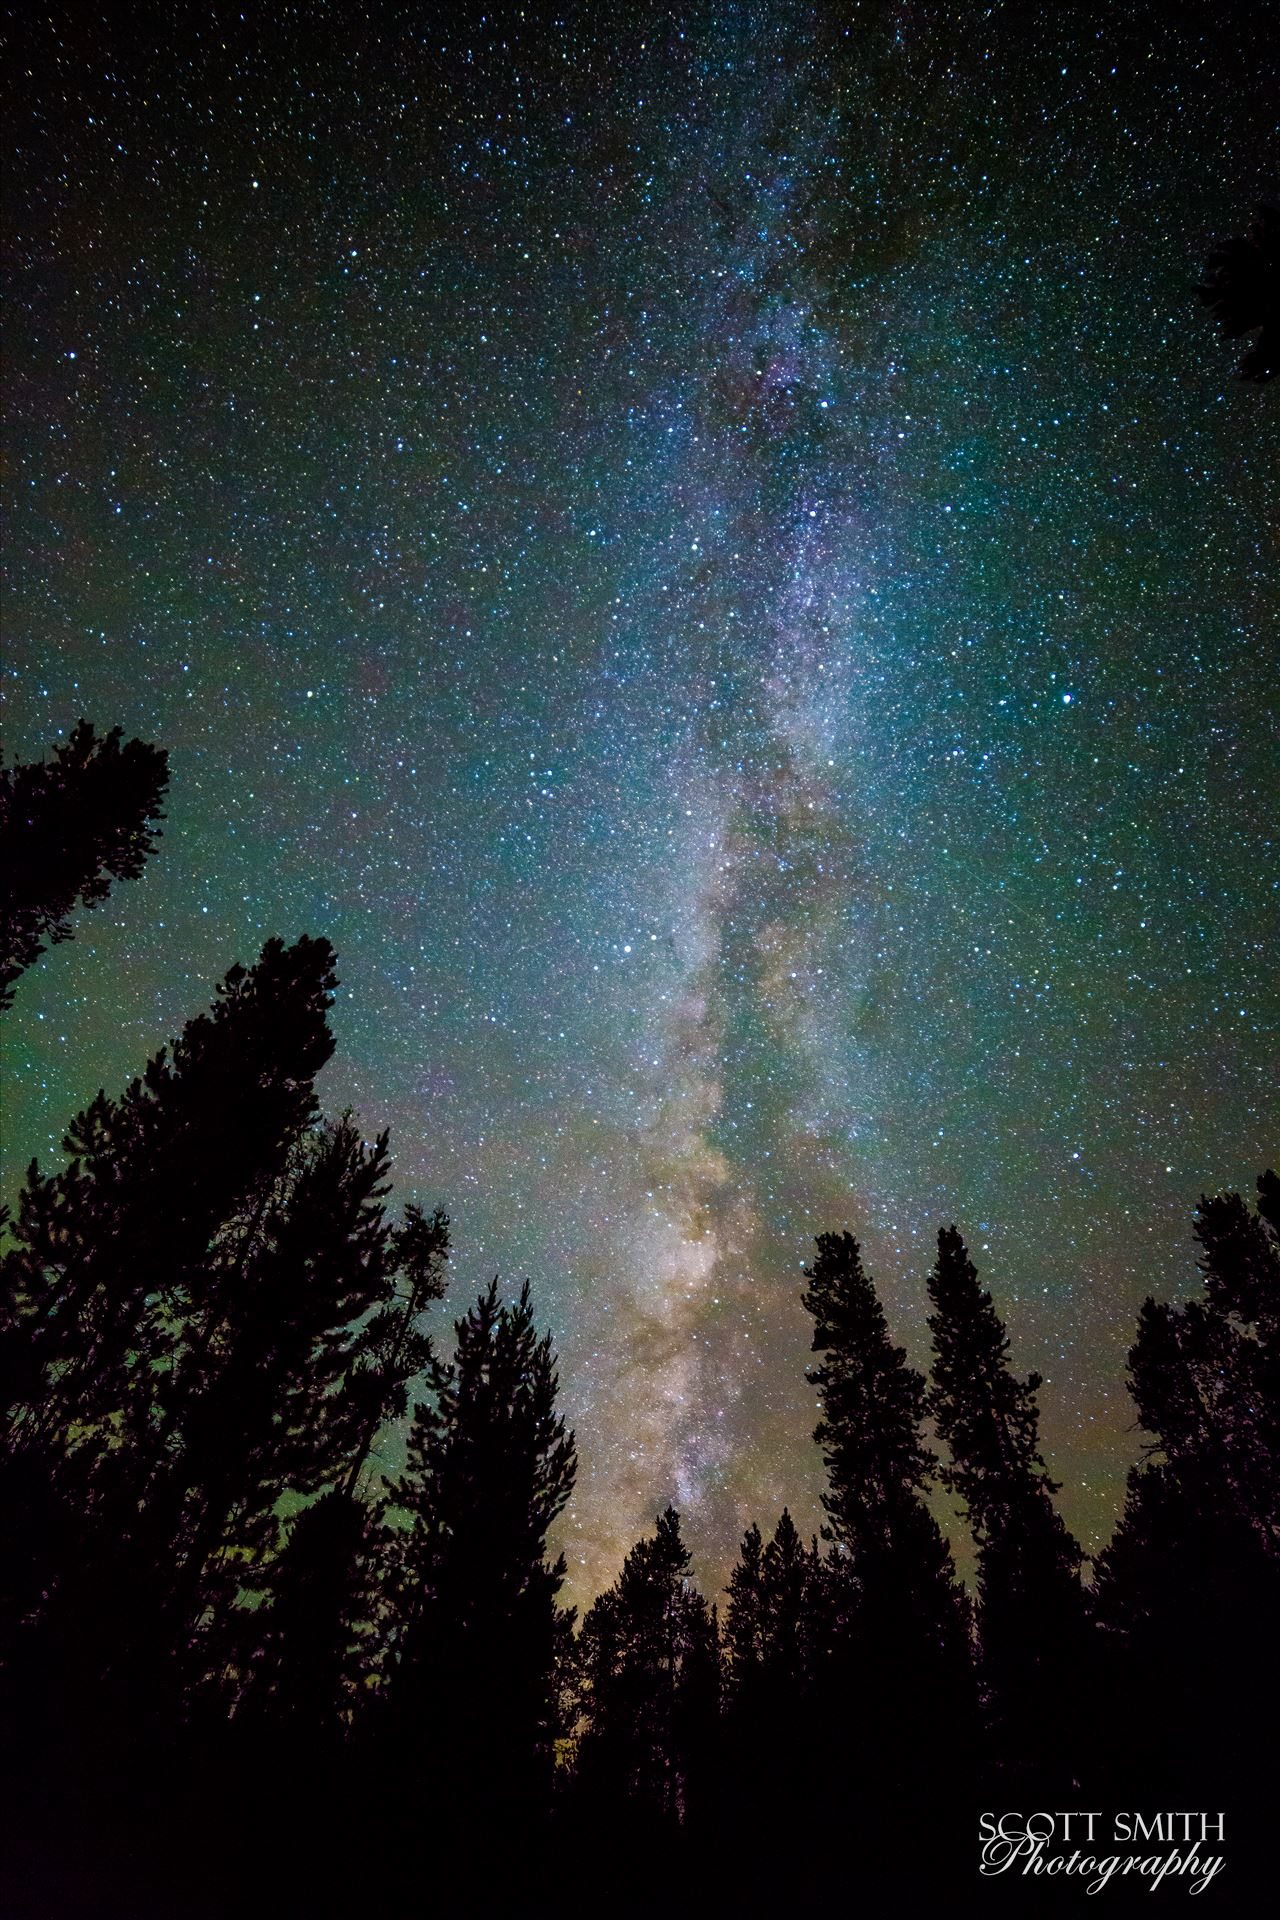 Leadville Starry Sky - Another beautiful view of the milky way from our campsite at Turquoise Lake, Leadville Colorado. by D Scott Smith